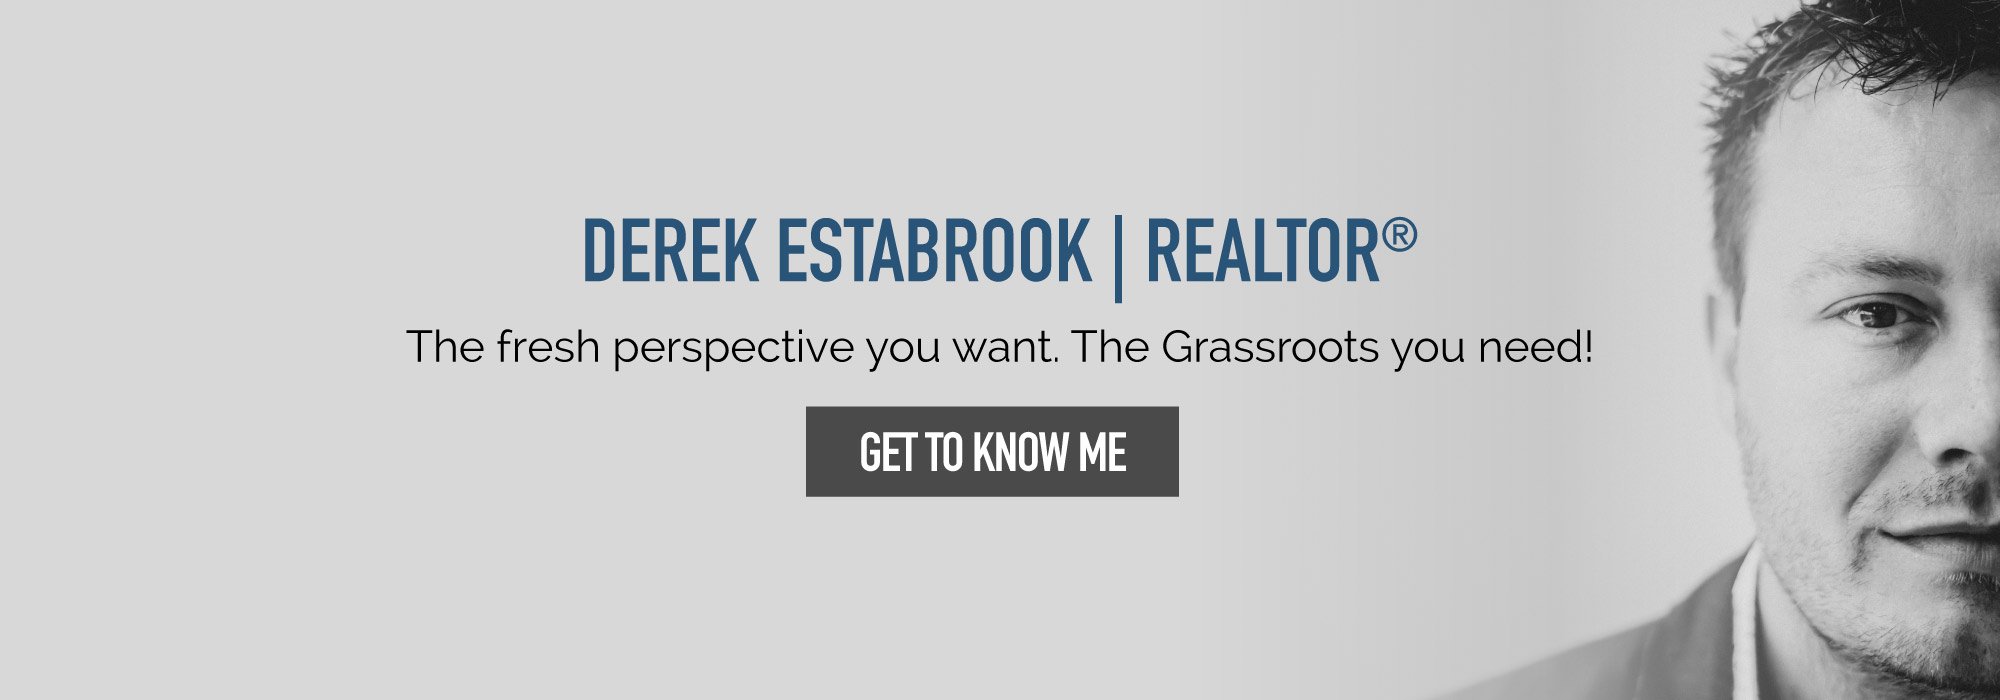 Derek Estabrook Realtor   Grassroots Realtor, Buy or Sell your home in the peace region